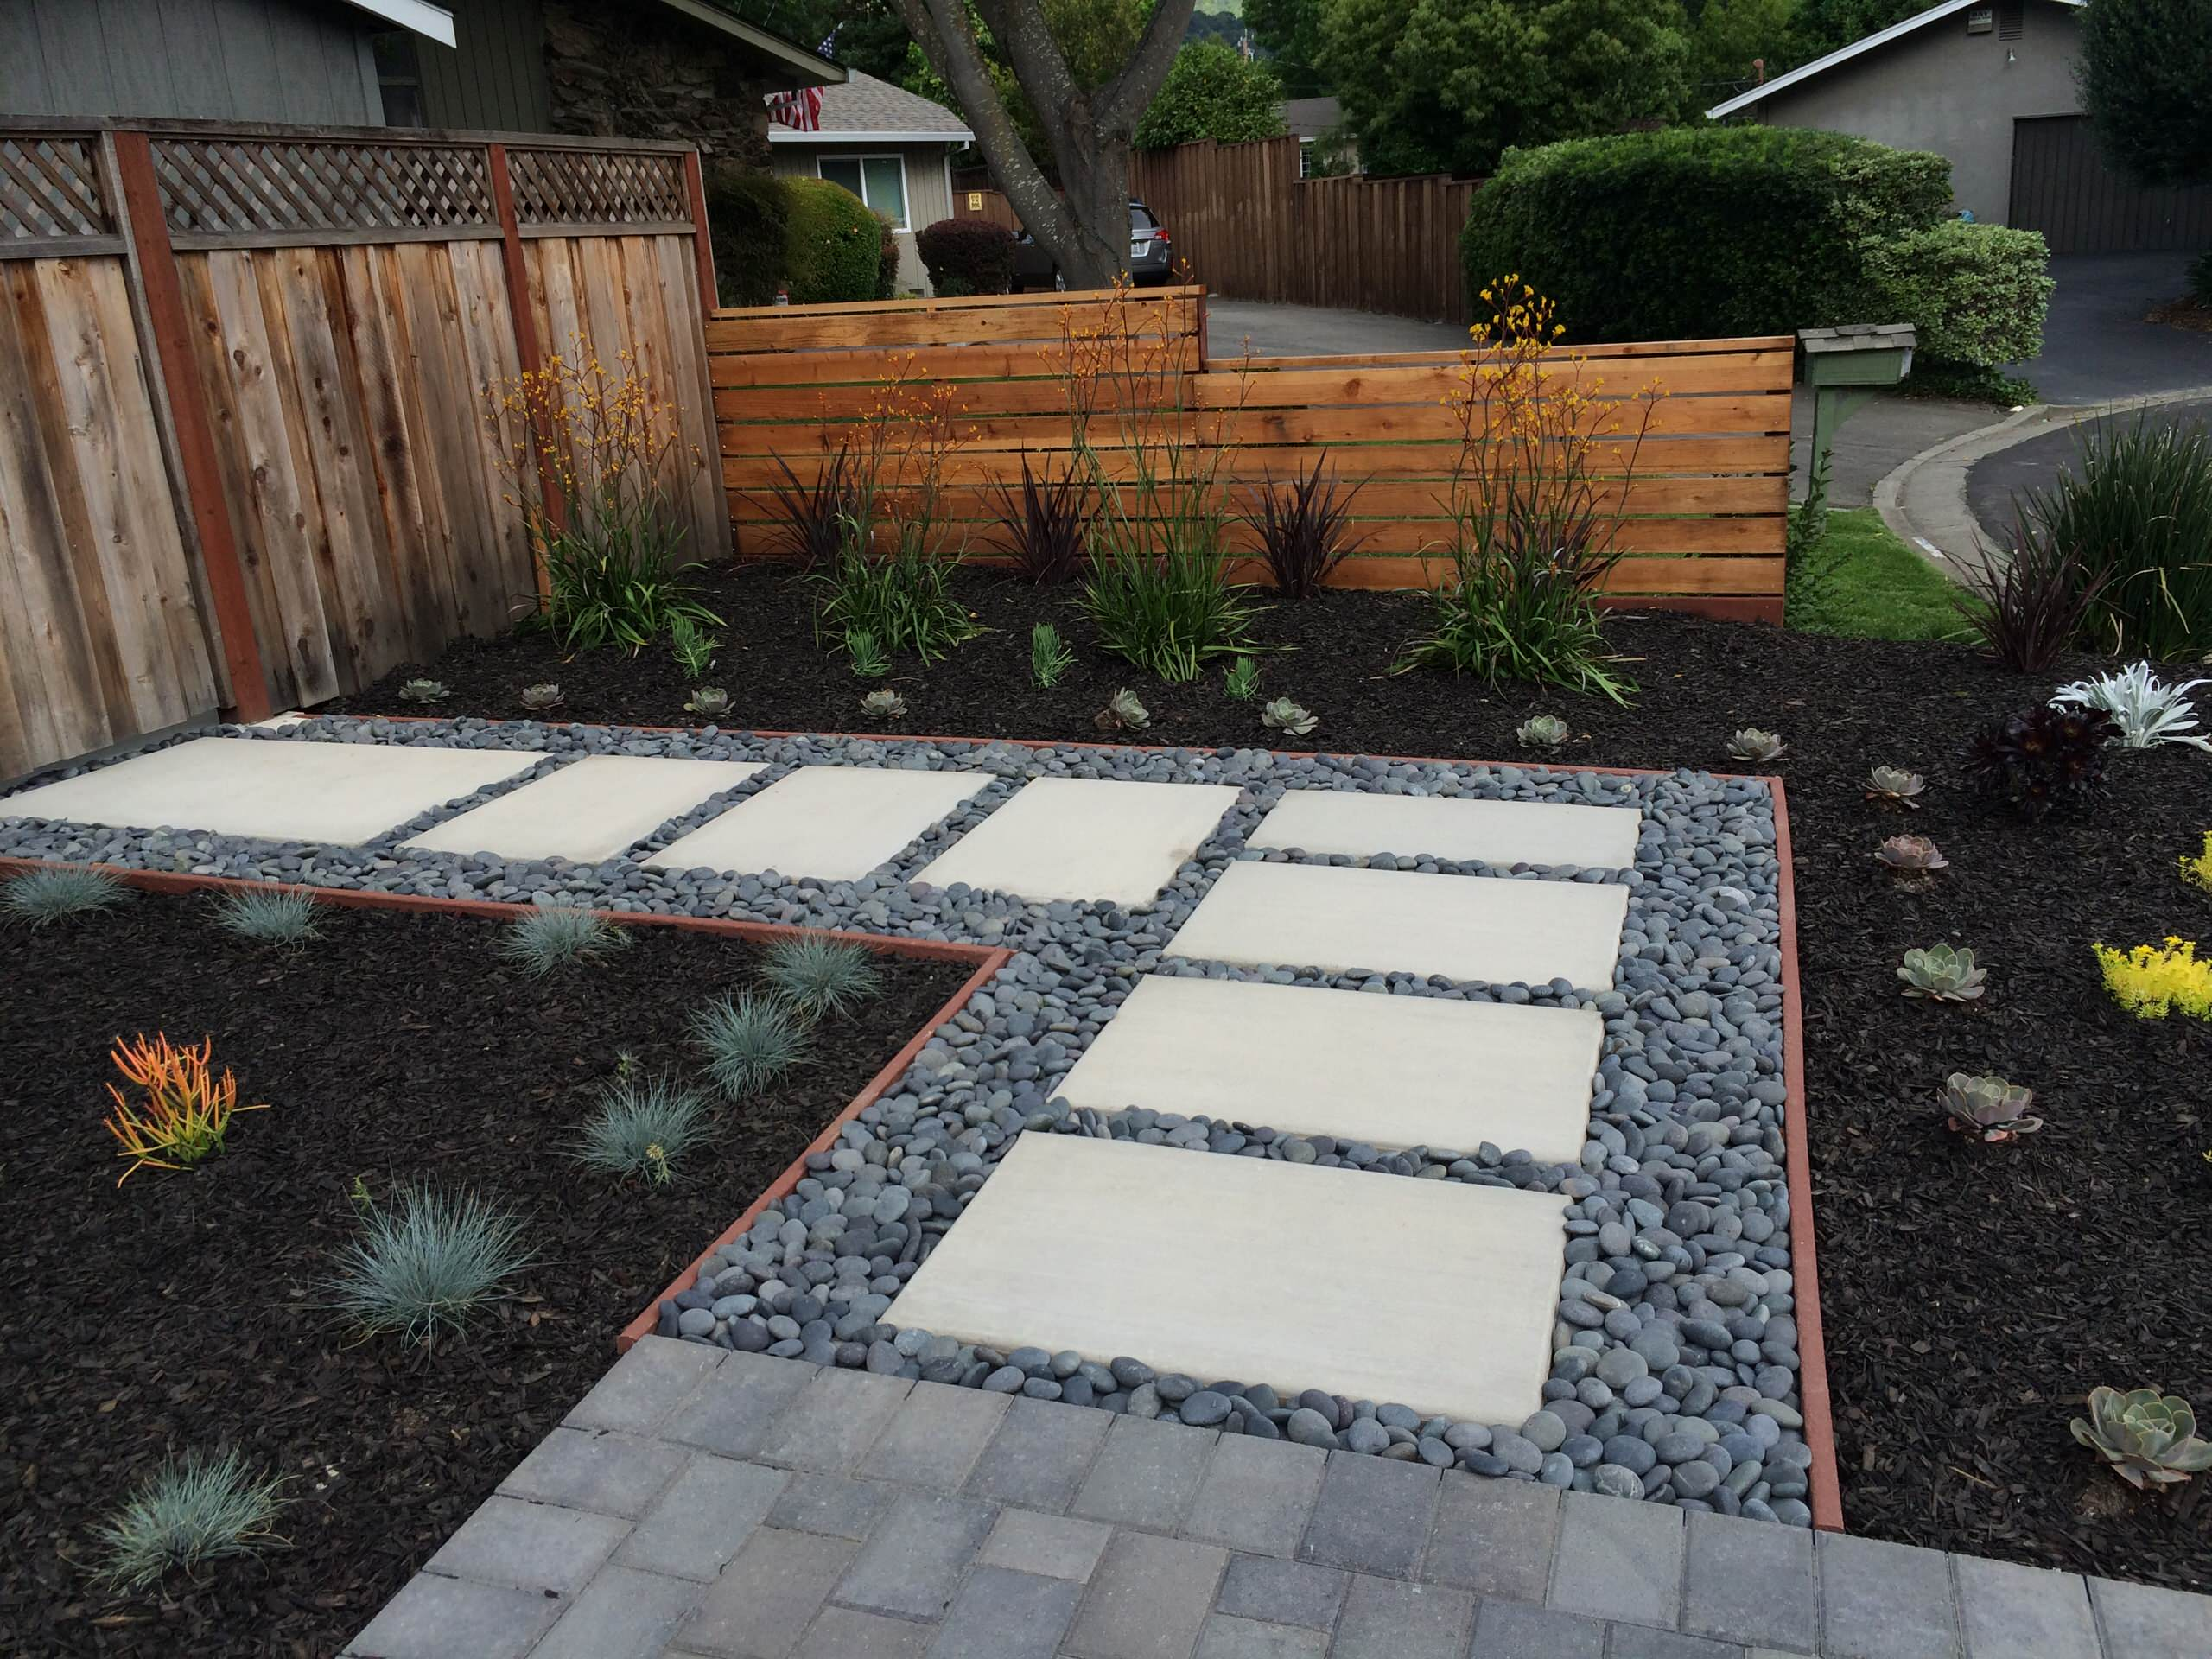 75 Beautiful Mulch Landscaping Pictures Ideas February 2021 Houzz